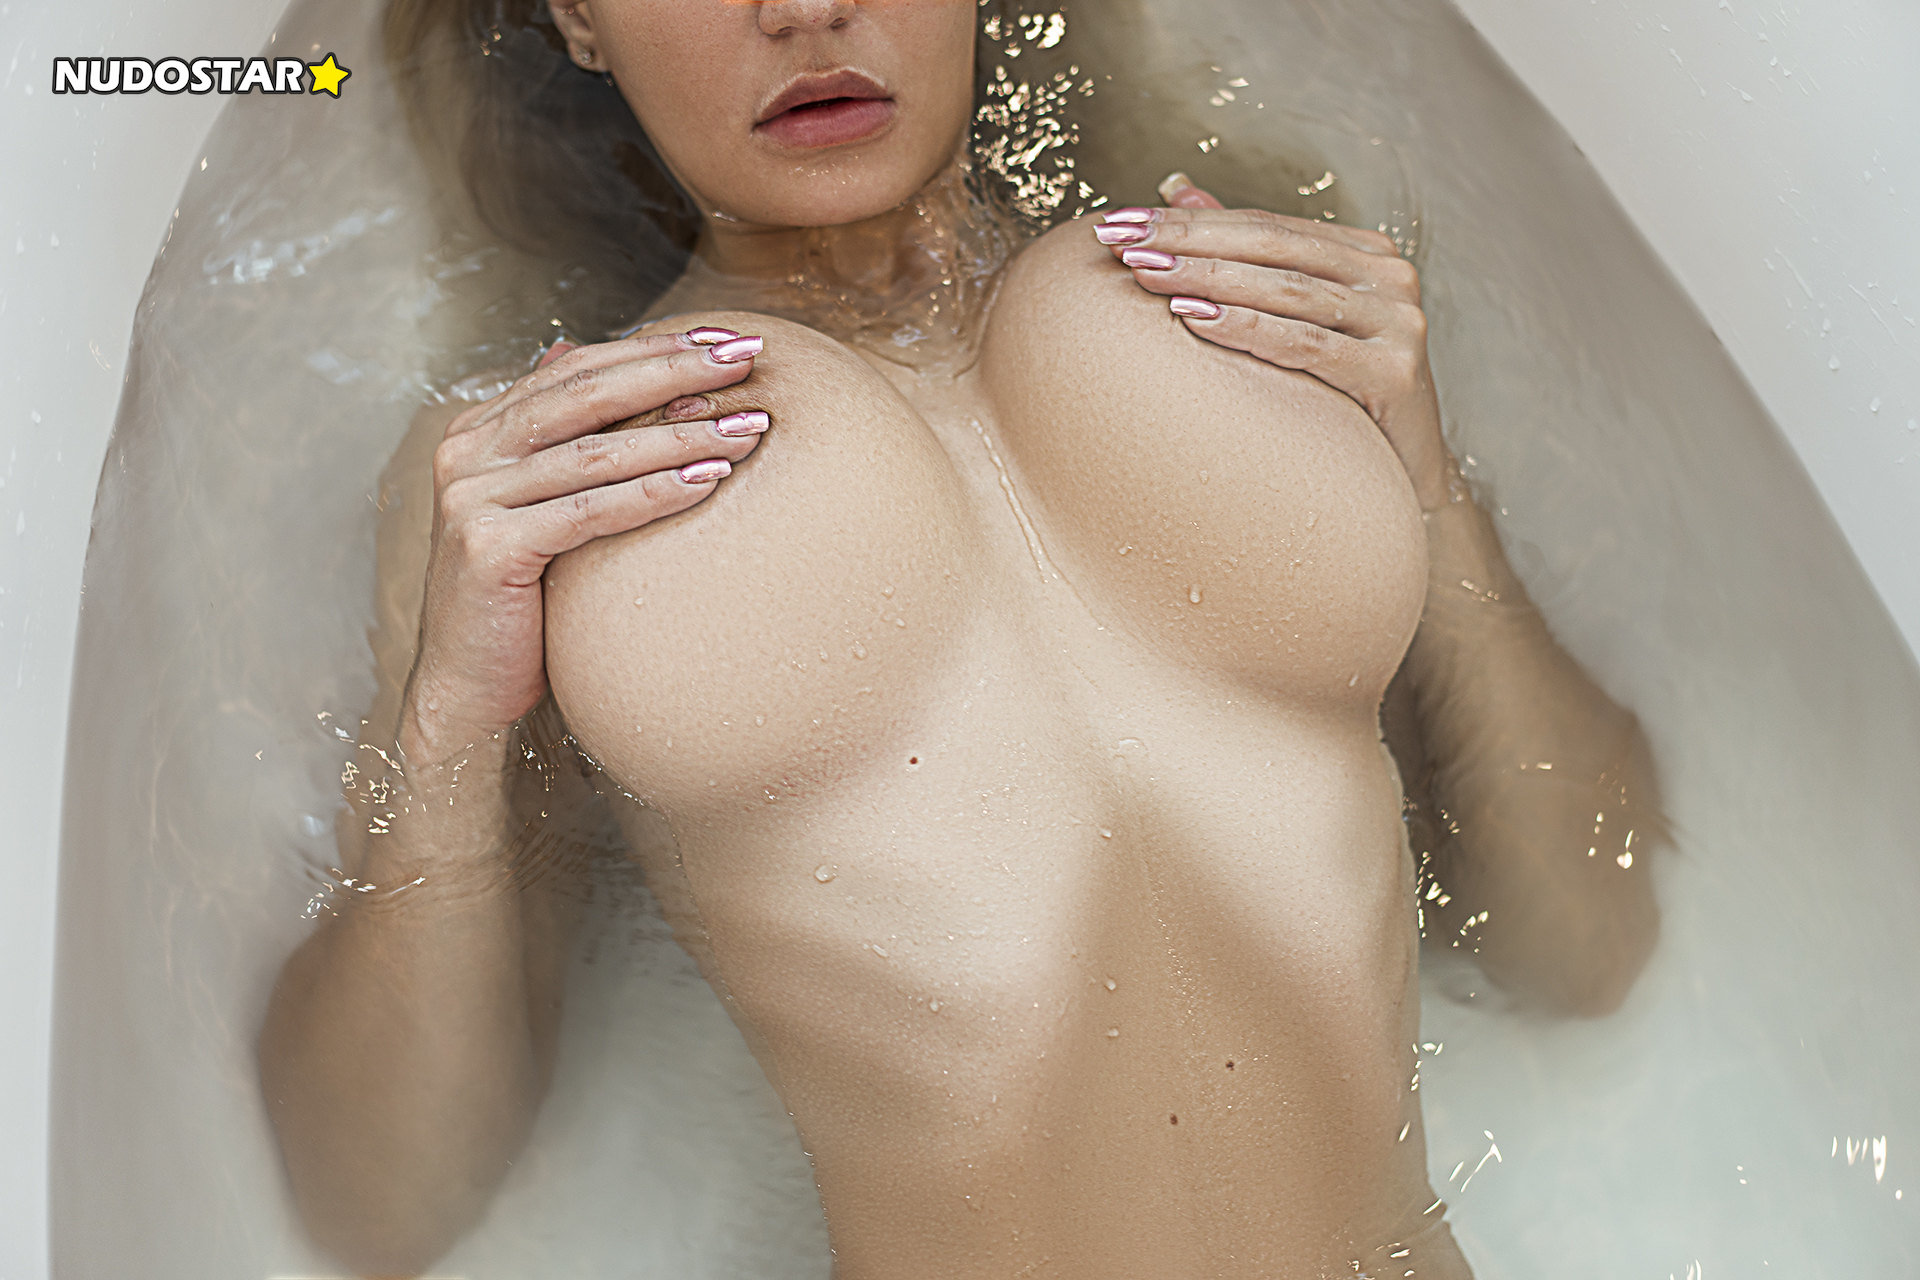 Candy Grettel OnlyFans Nude Leaks (9 Photos)